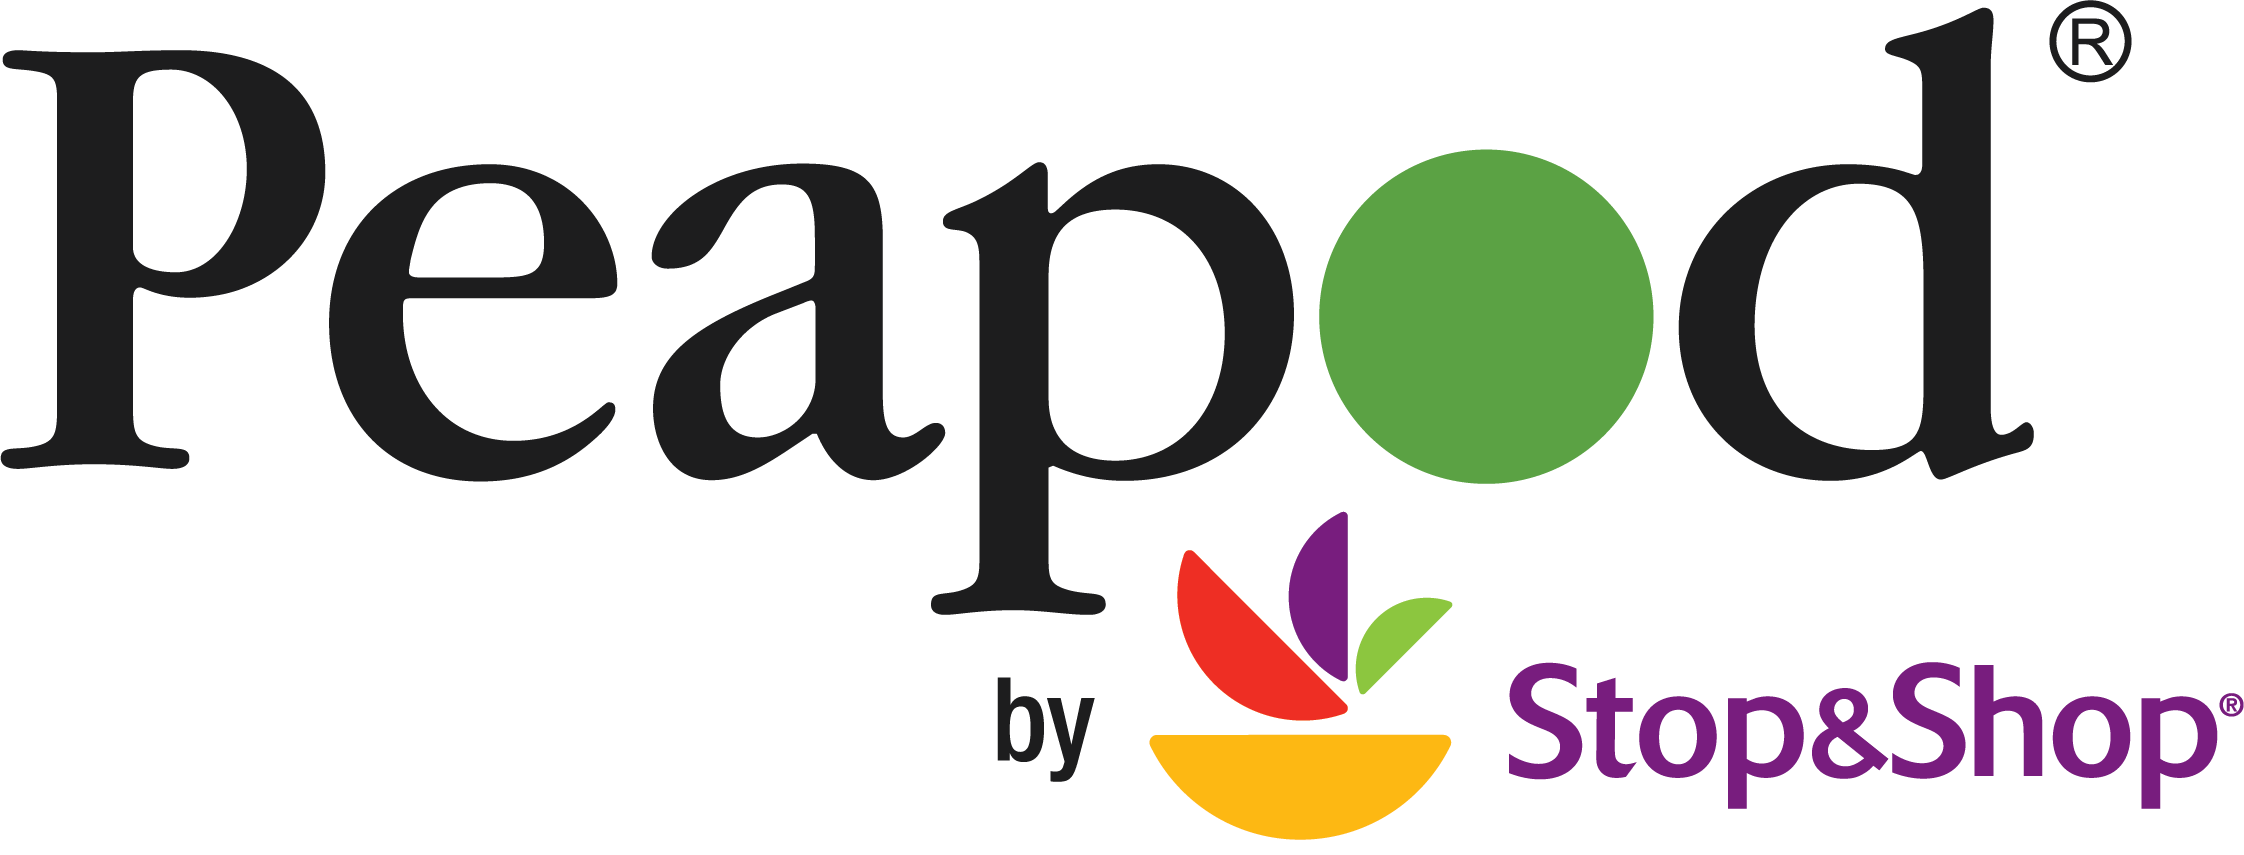 PeapodByStop&Shop_Stacked_CMYK.png